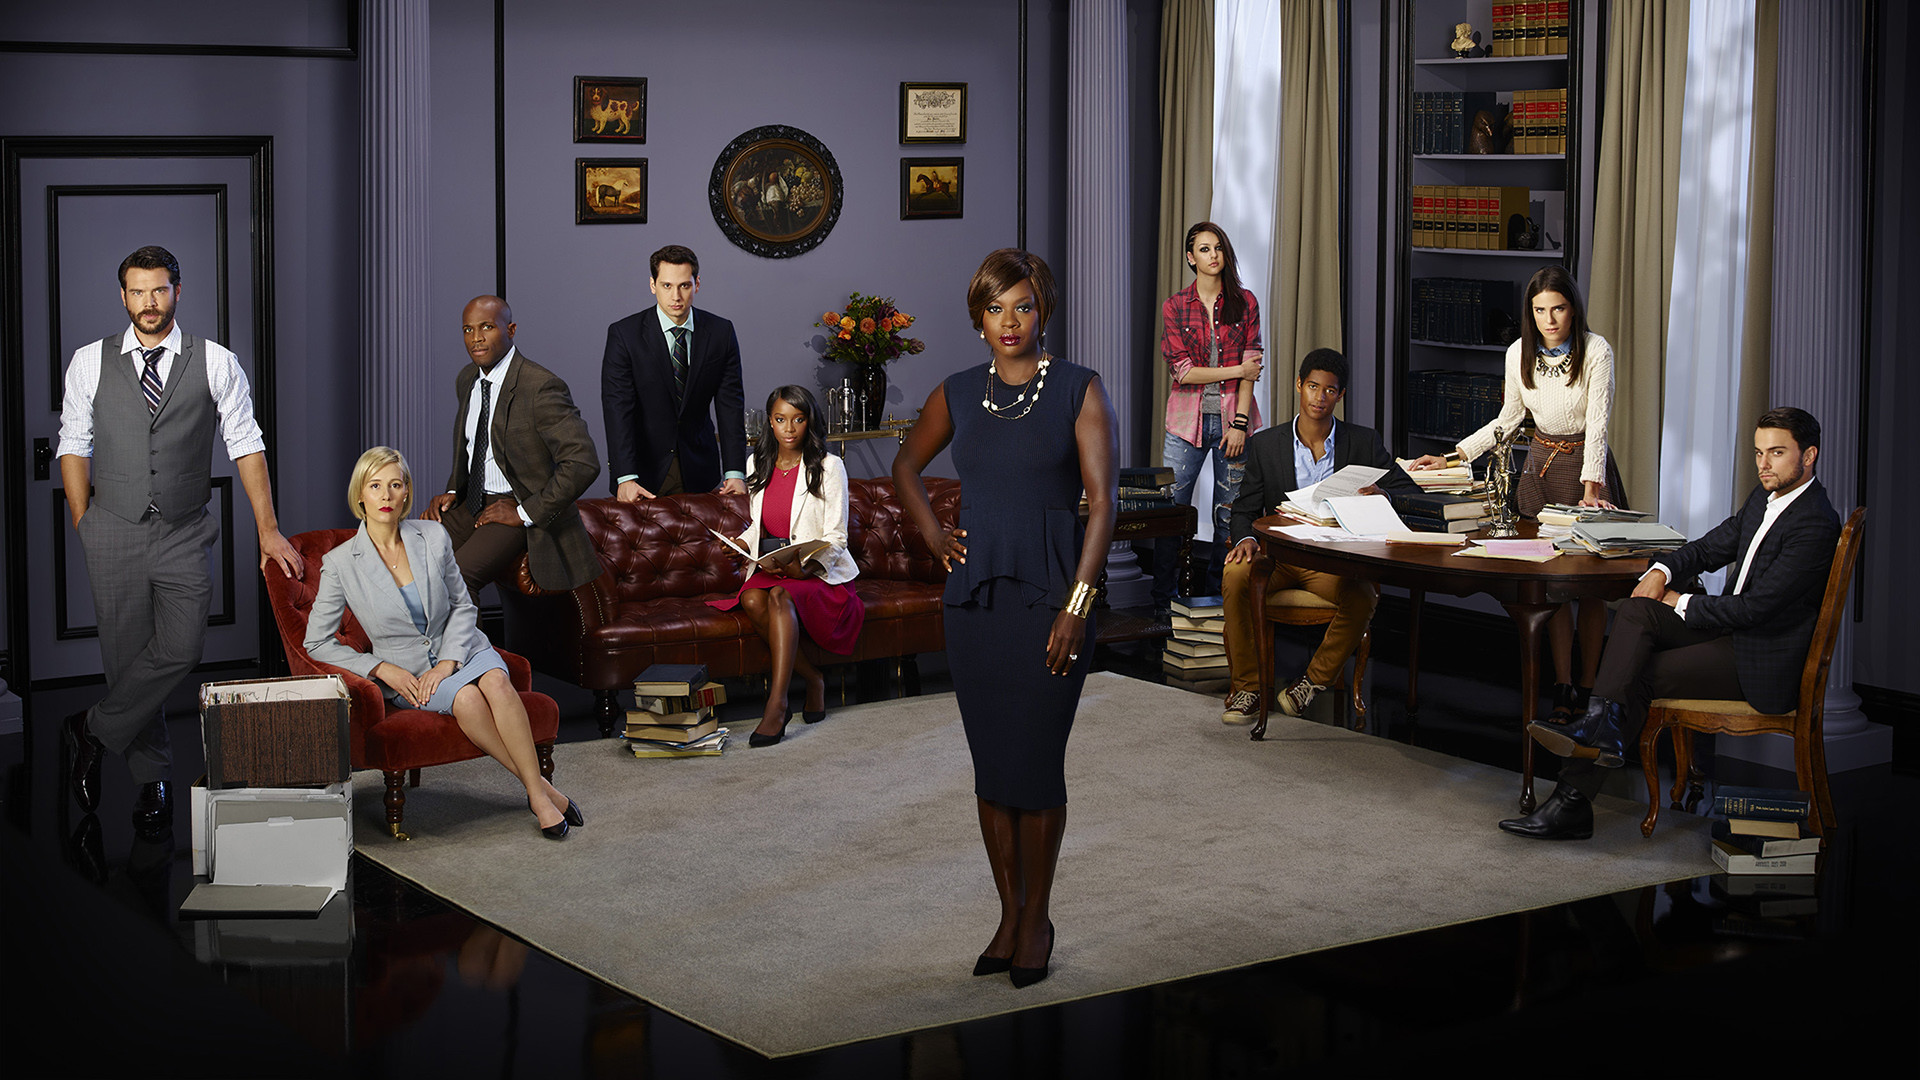 How To Get Away With Murder Episode Guide, Show Summary And Schedule: Track  Your Favourite Tv Shows